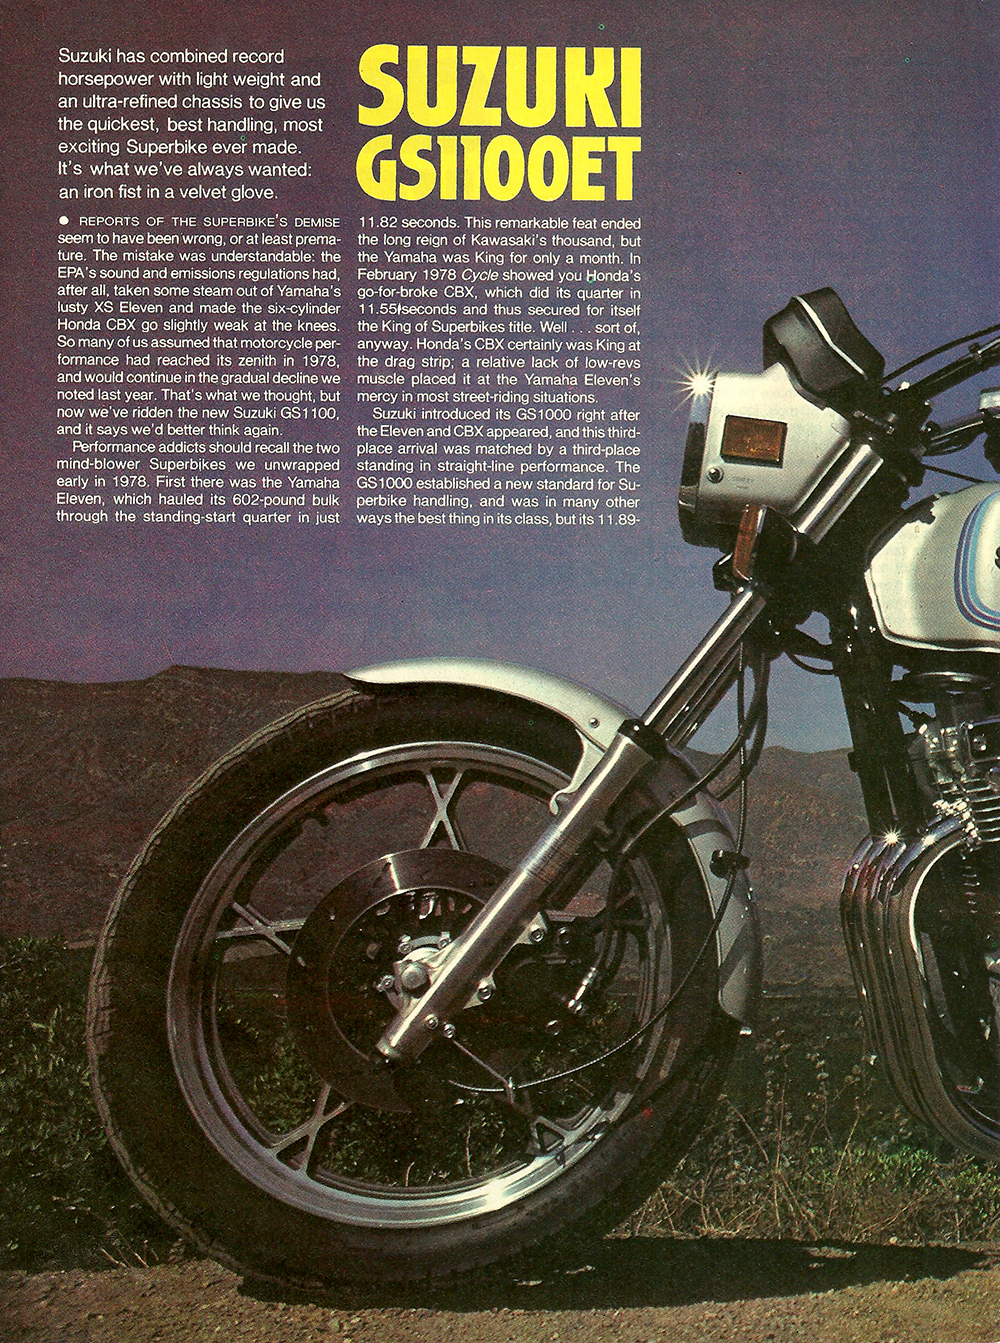 1980 Suzuki GS1100 ET road test 01.jpg